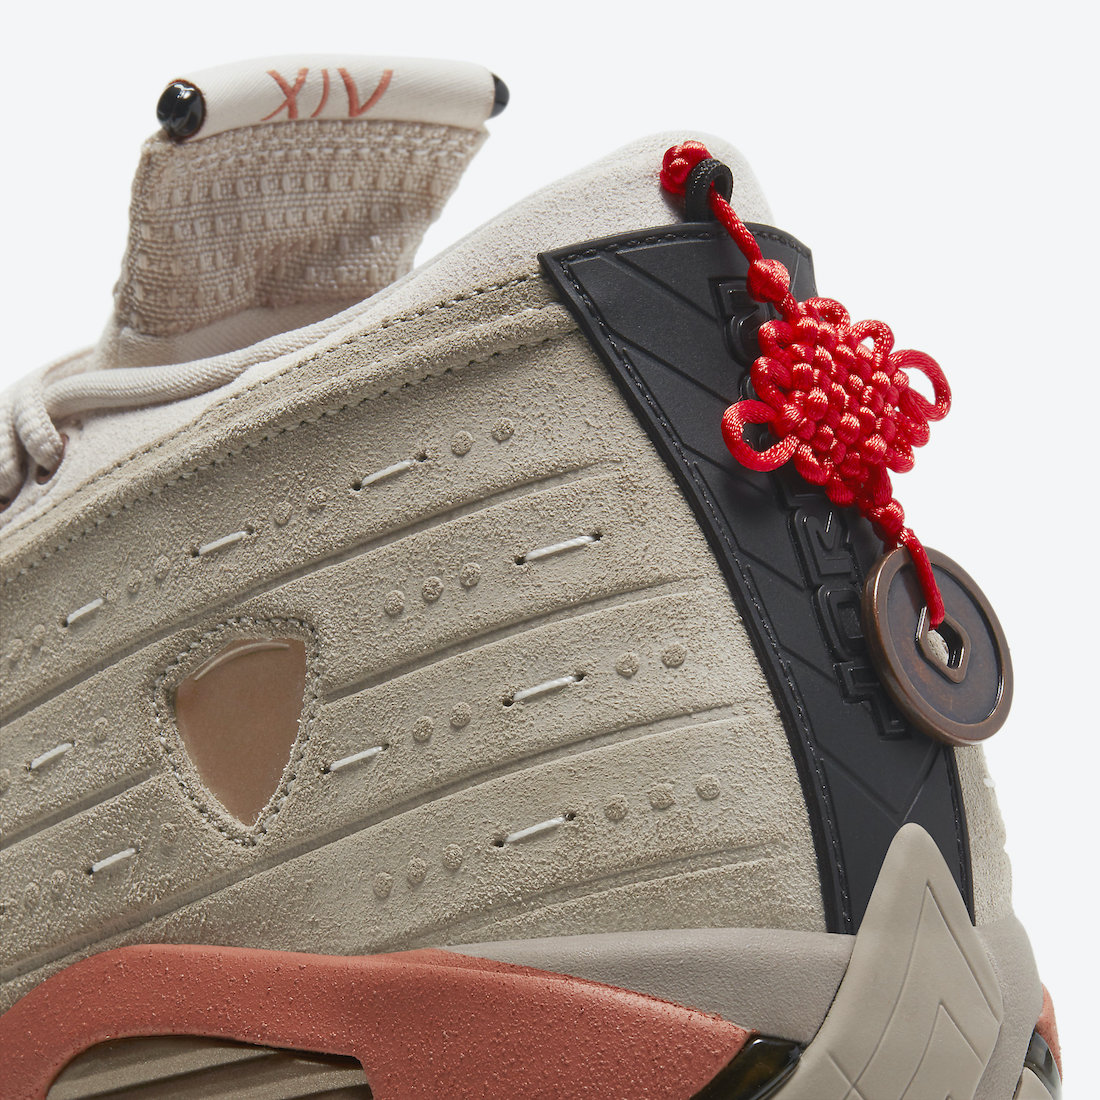 Clot x Air Jordan 14 Low